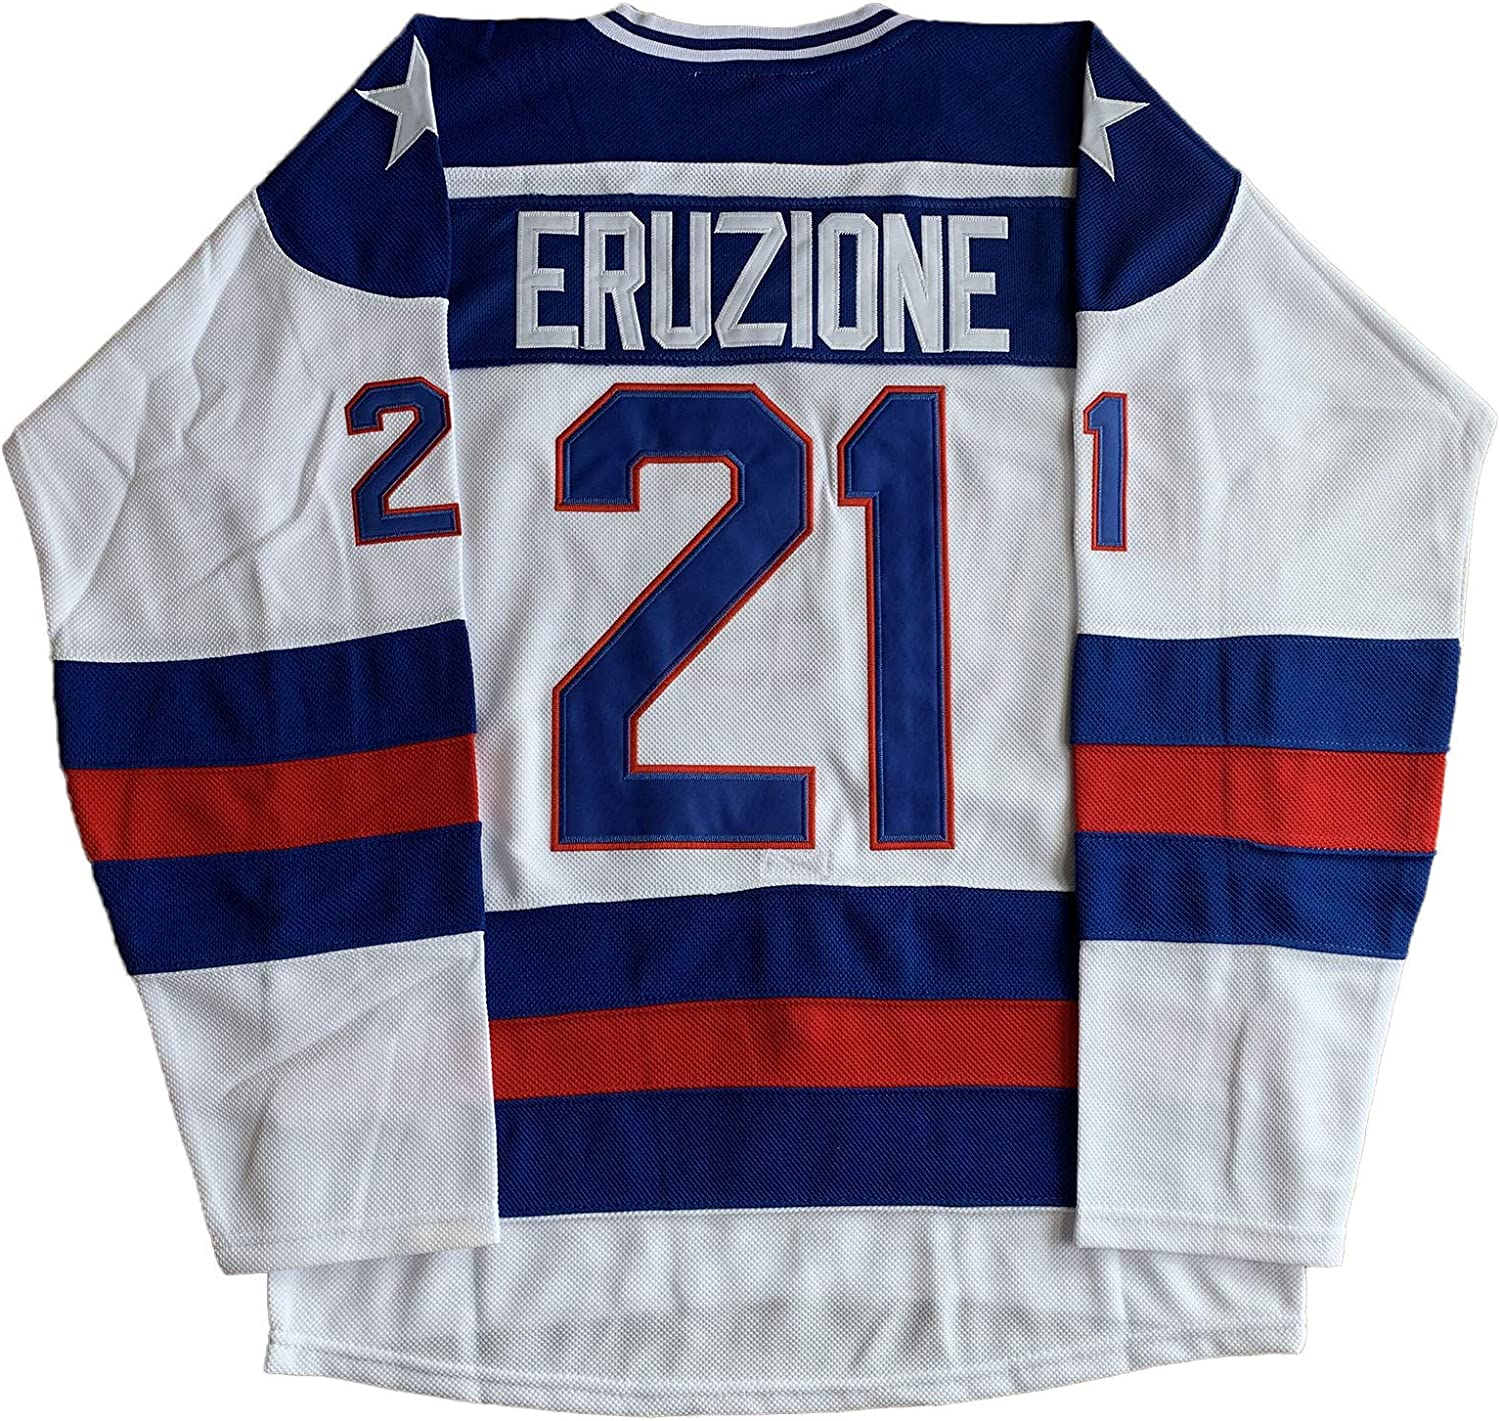 #21 Mike Eruzione 1980 Miracle On Ice USA Hockey 17 Jack O'Callahan 30 Jim Craig Stitched Hockey Jerseys (21 White, X-Large) 810Kv7q-GmL